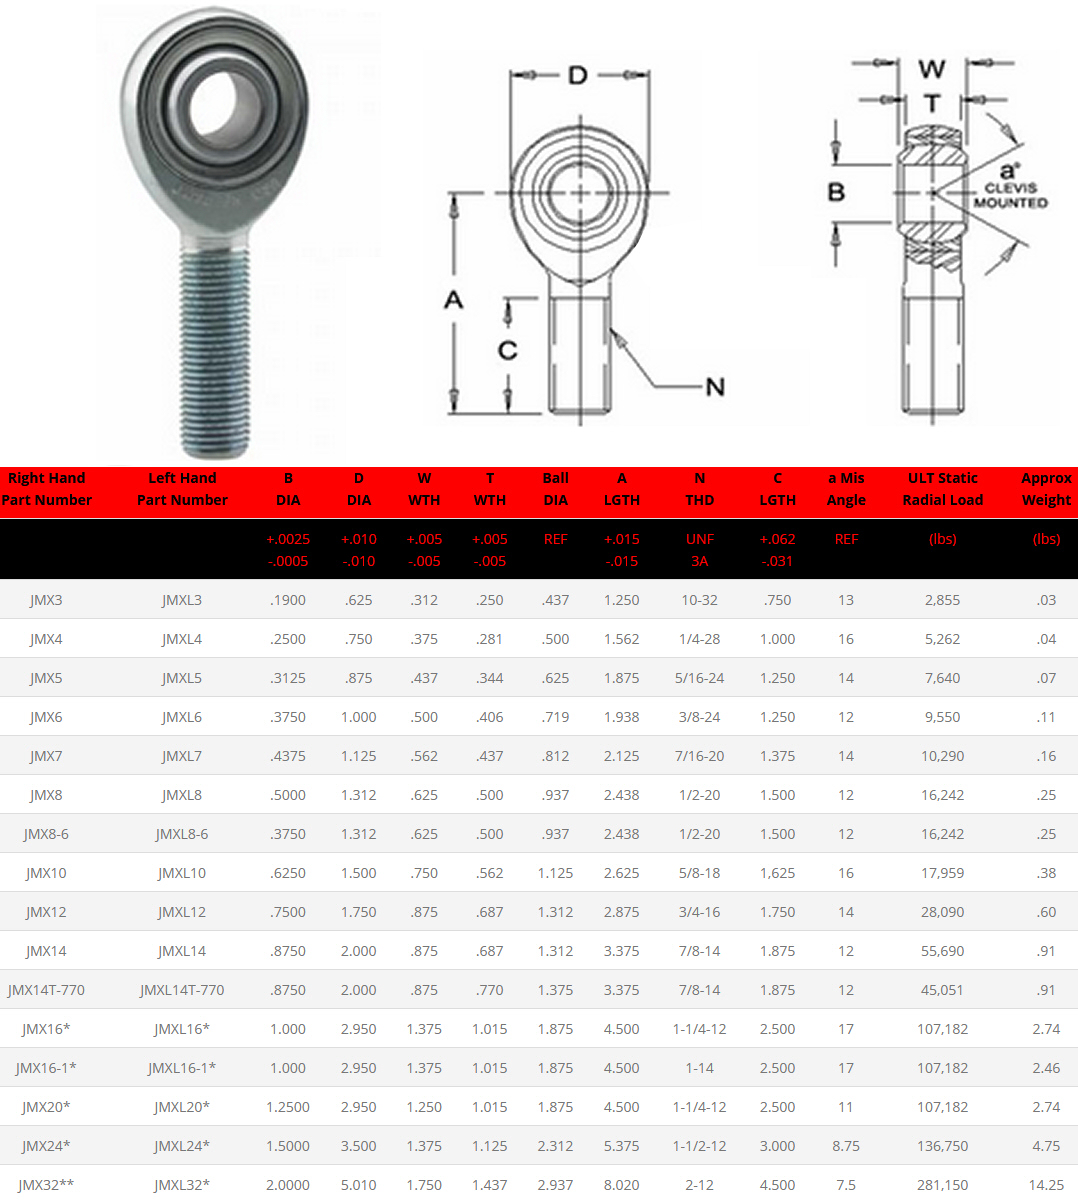 fk bearings jmx series heim joints and rod ends specifications